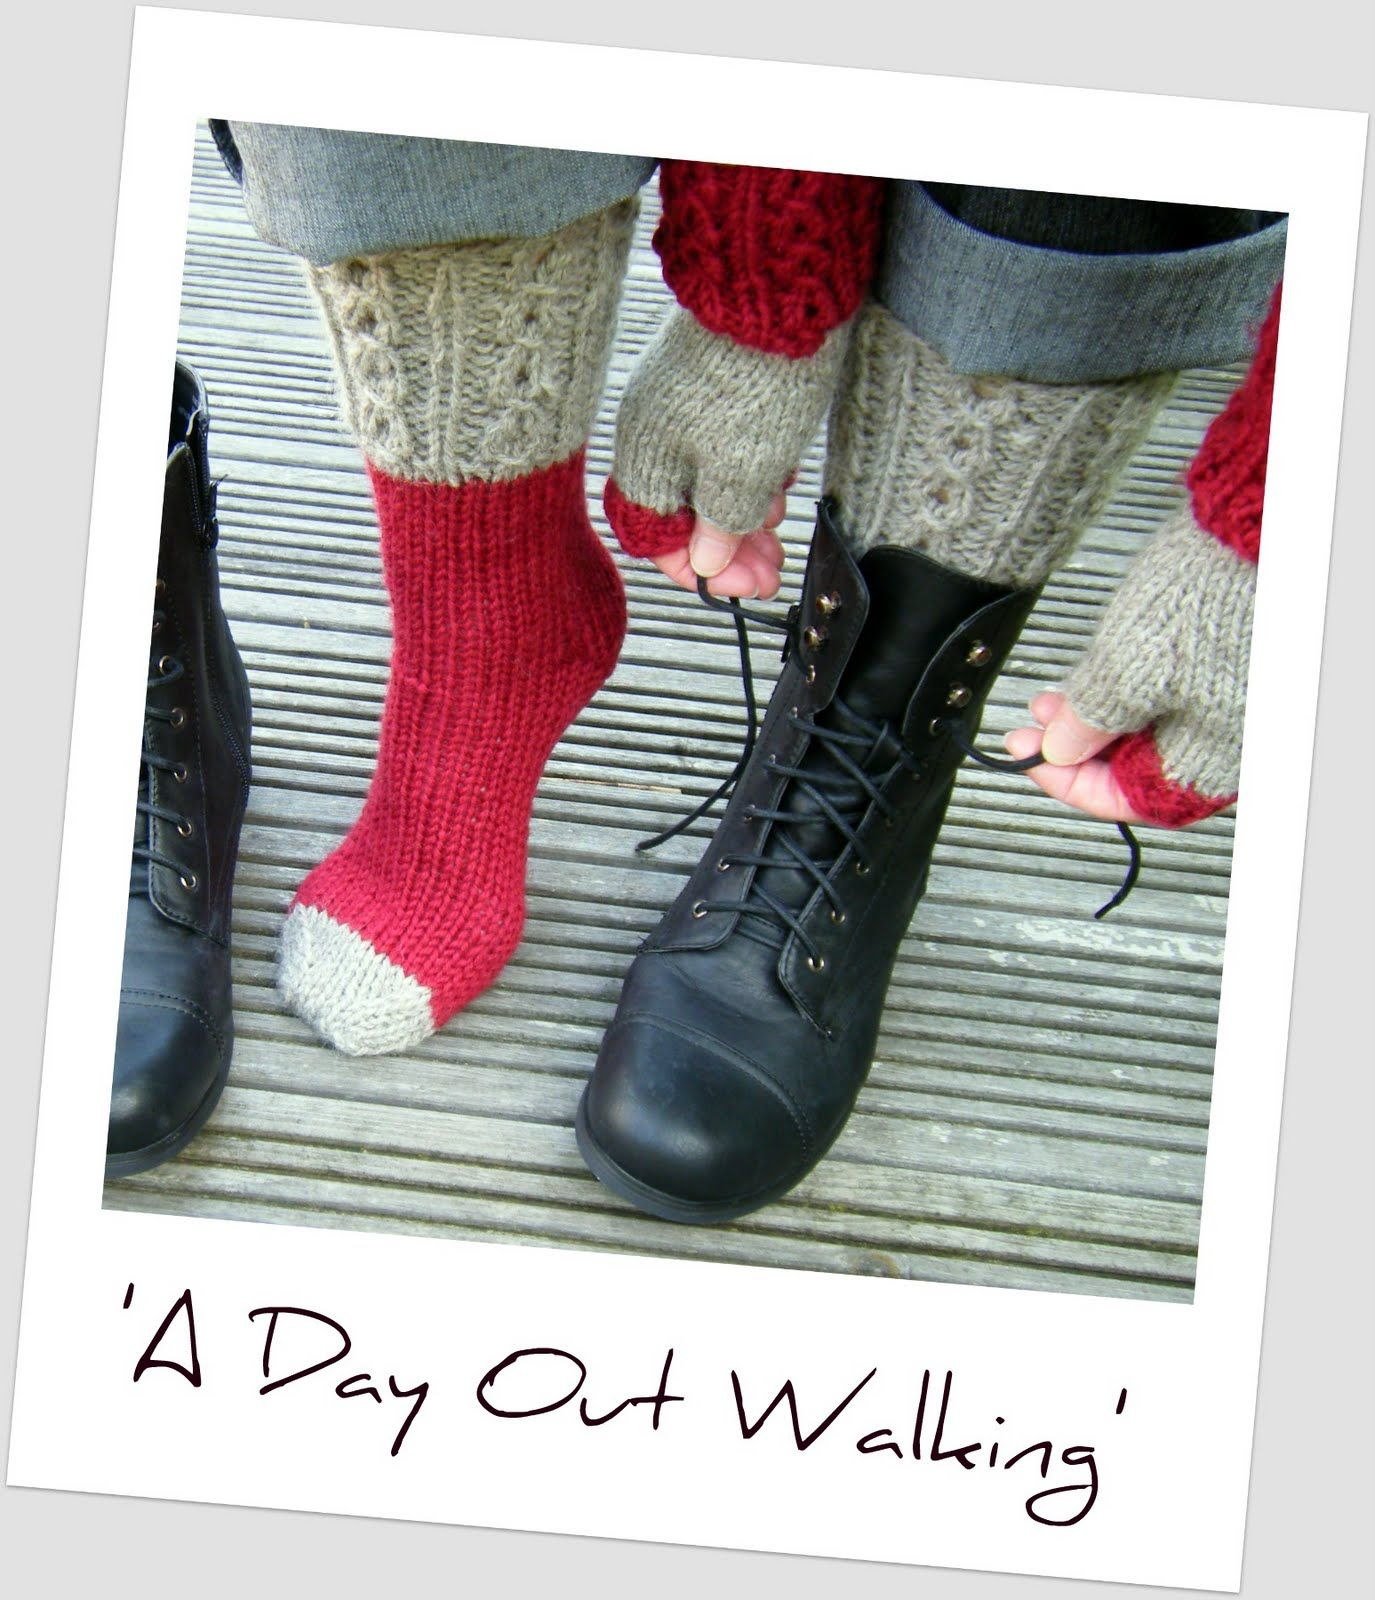 Must knit these boot socks from hand knitted things patterns a must knit these boot socks from hand knitted things patterns a day out walking bankloansurffo Choice Image